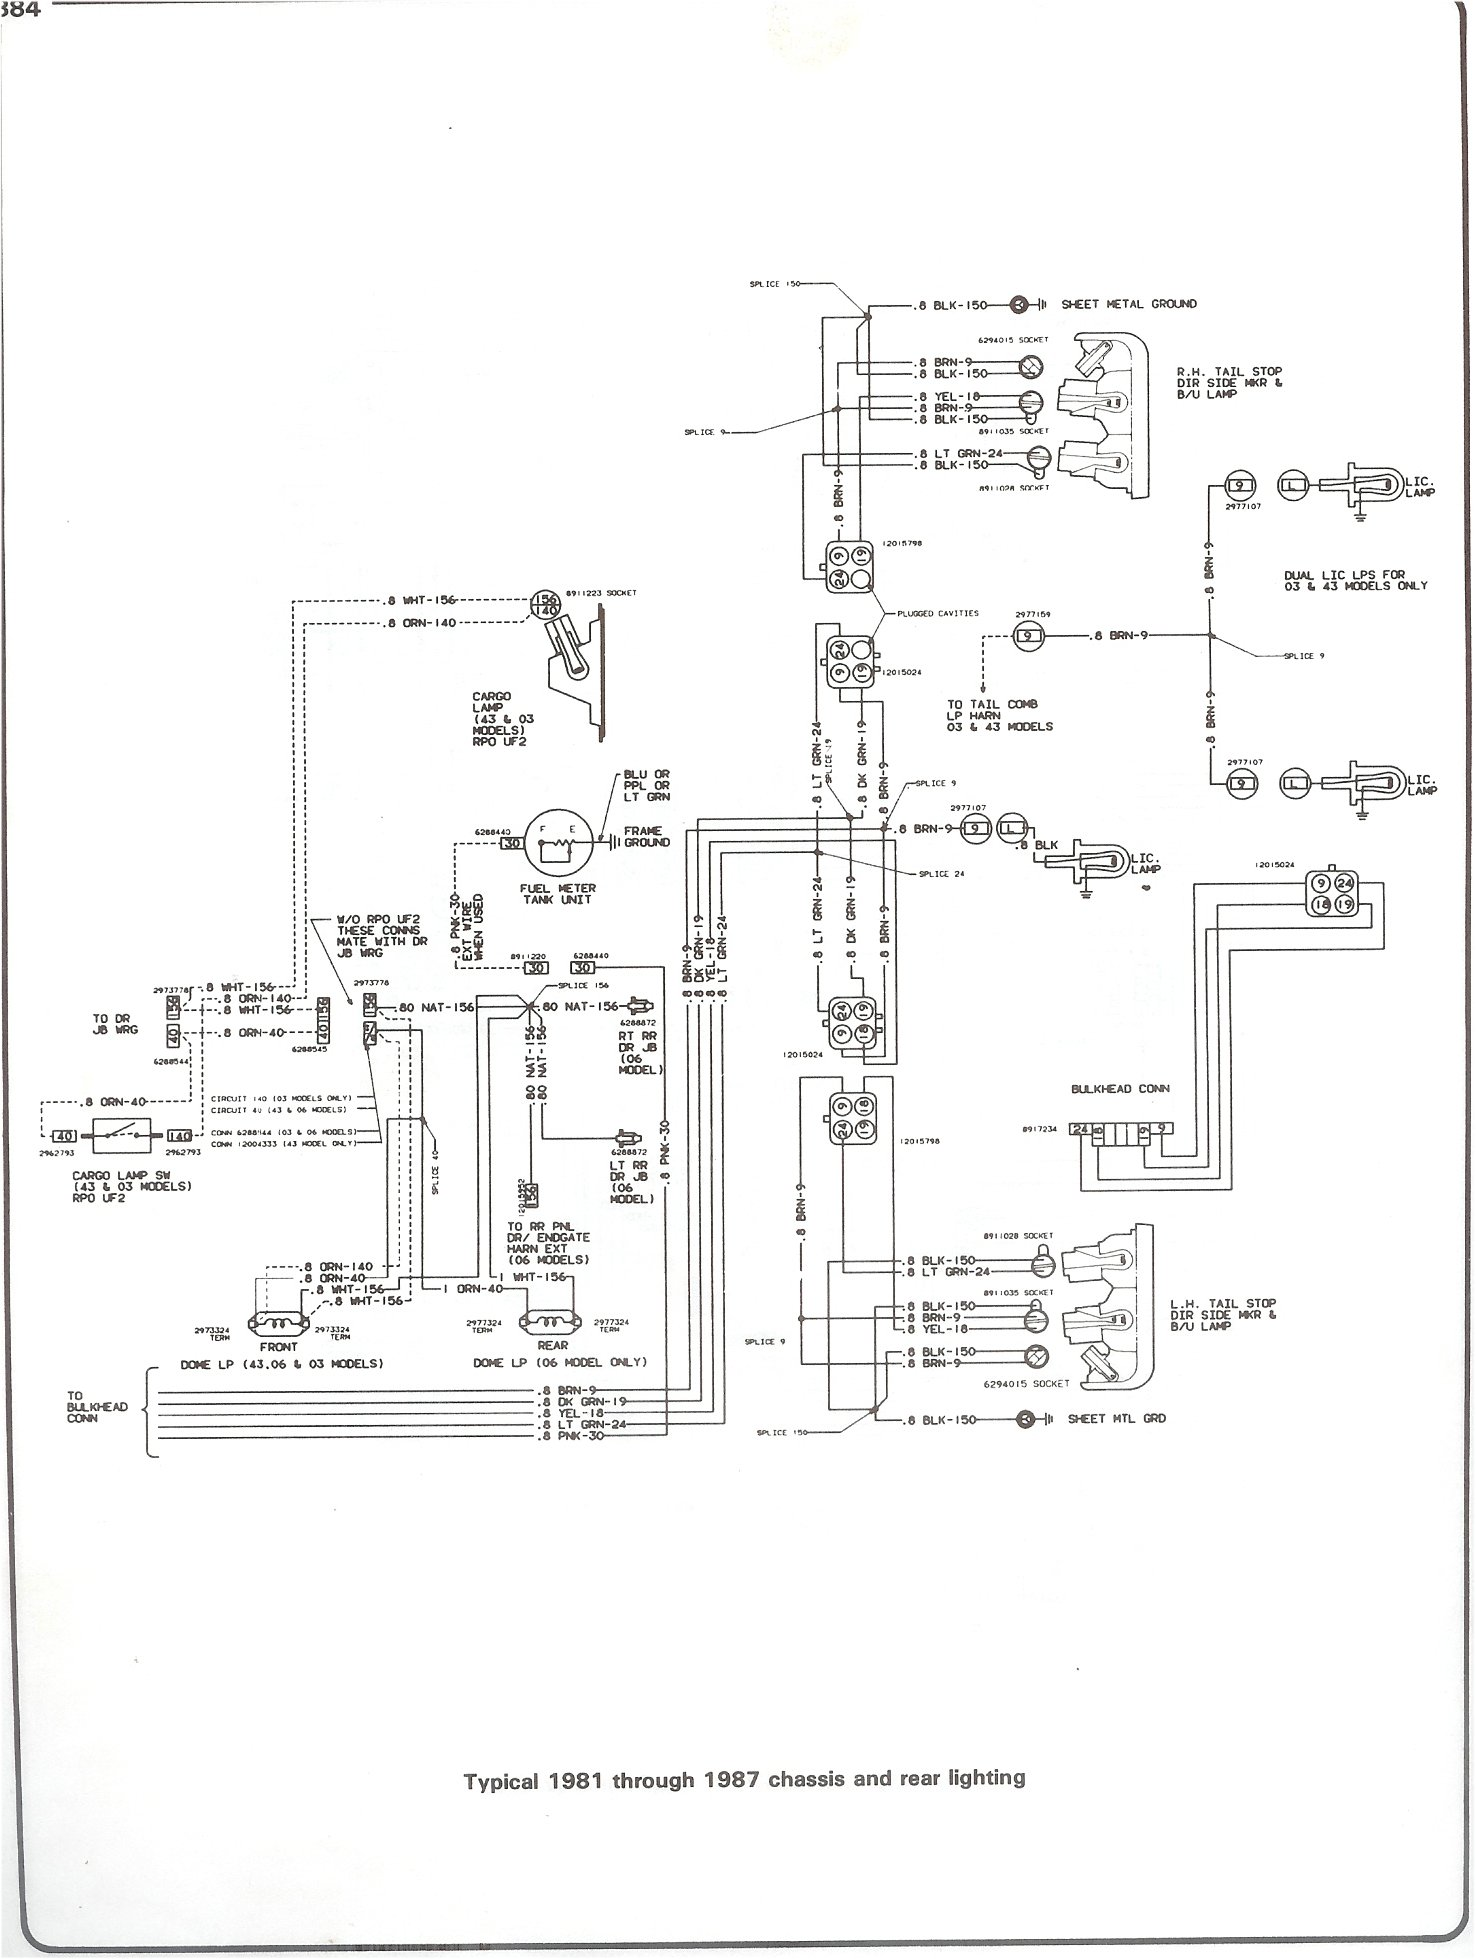 04 chevy silverado interior wiring diagram